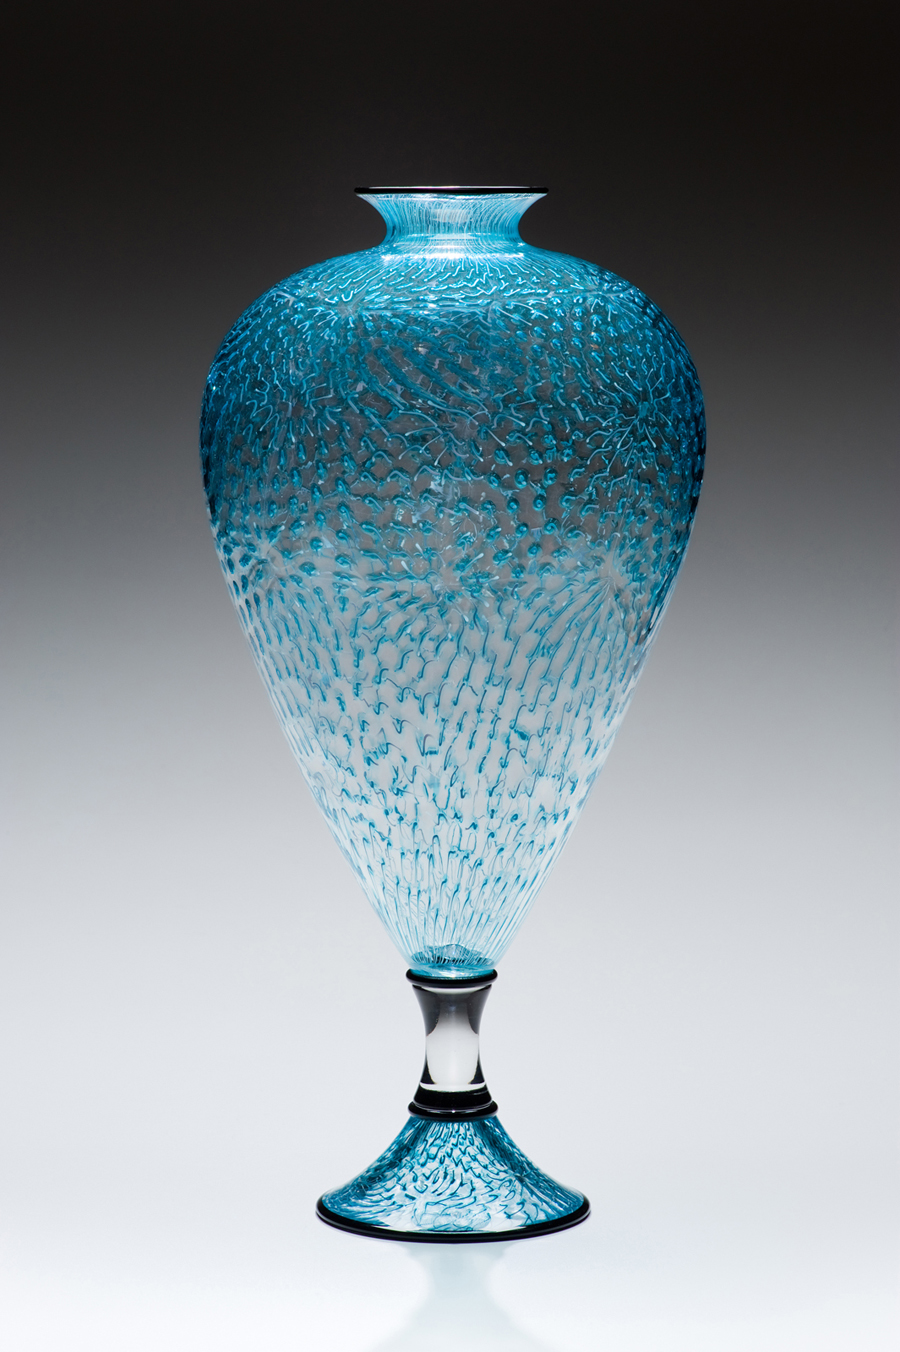 Kenny Pieper Hand Blown Art Glass